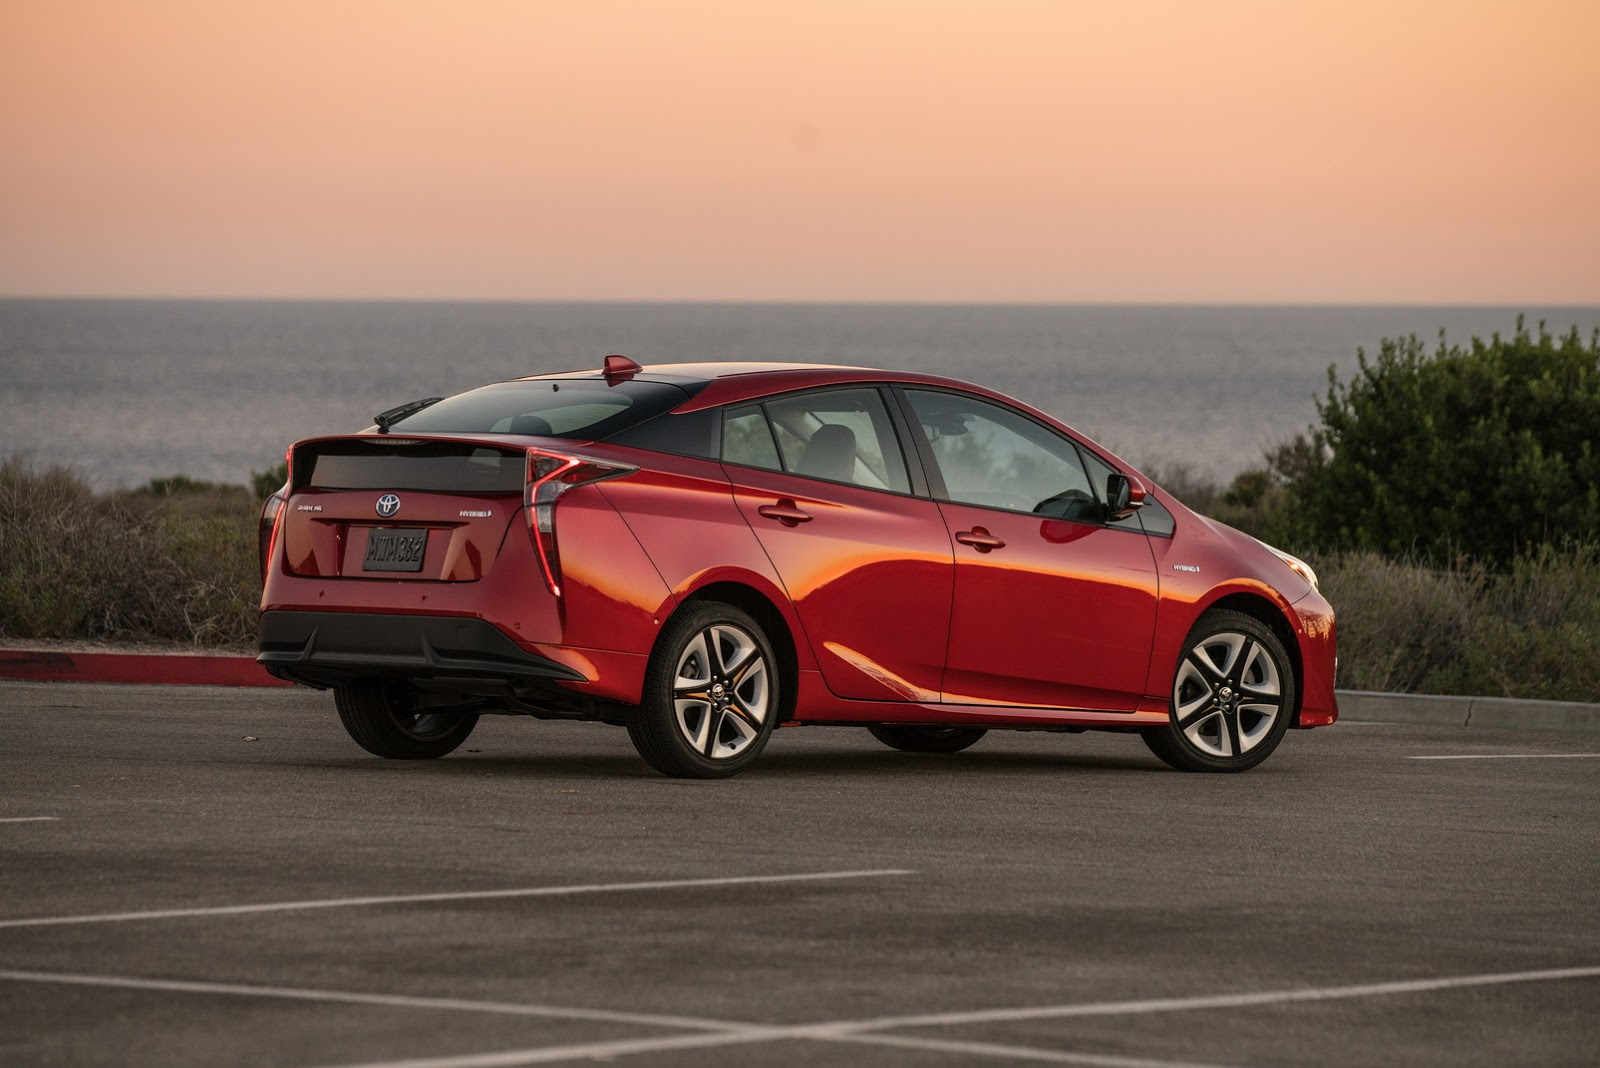 2016 toyota prius pricing in the us starts at 24 200 autoevolution. Black Bedroom Furniture Sets. Home Design Ideas